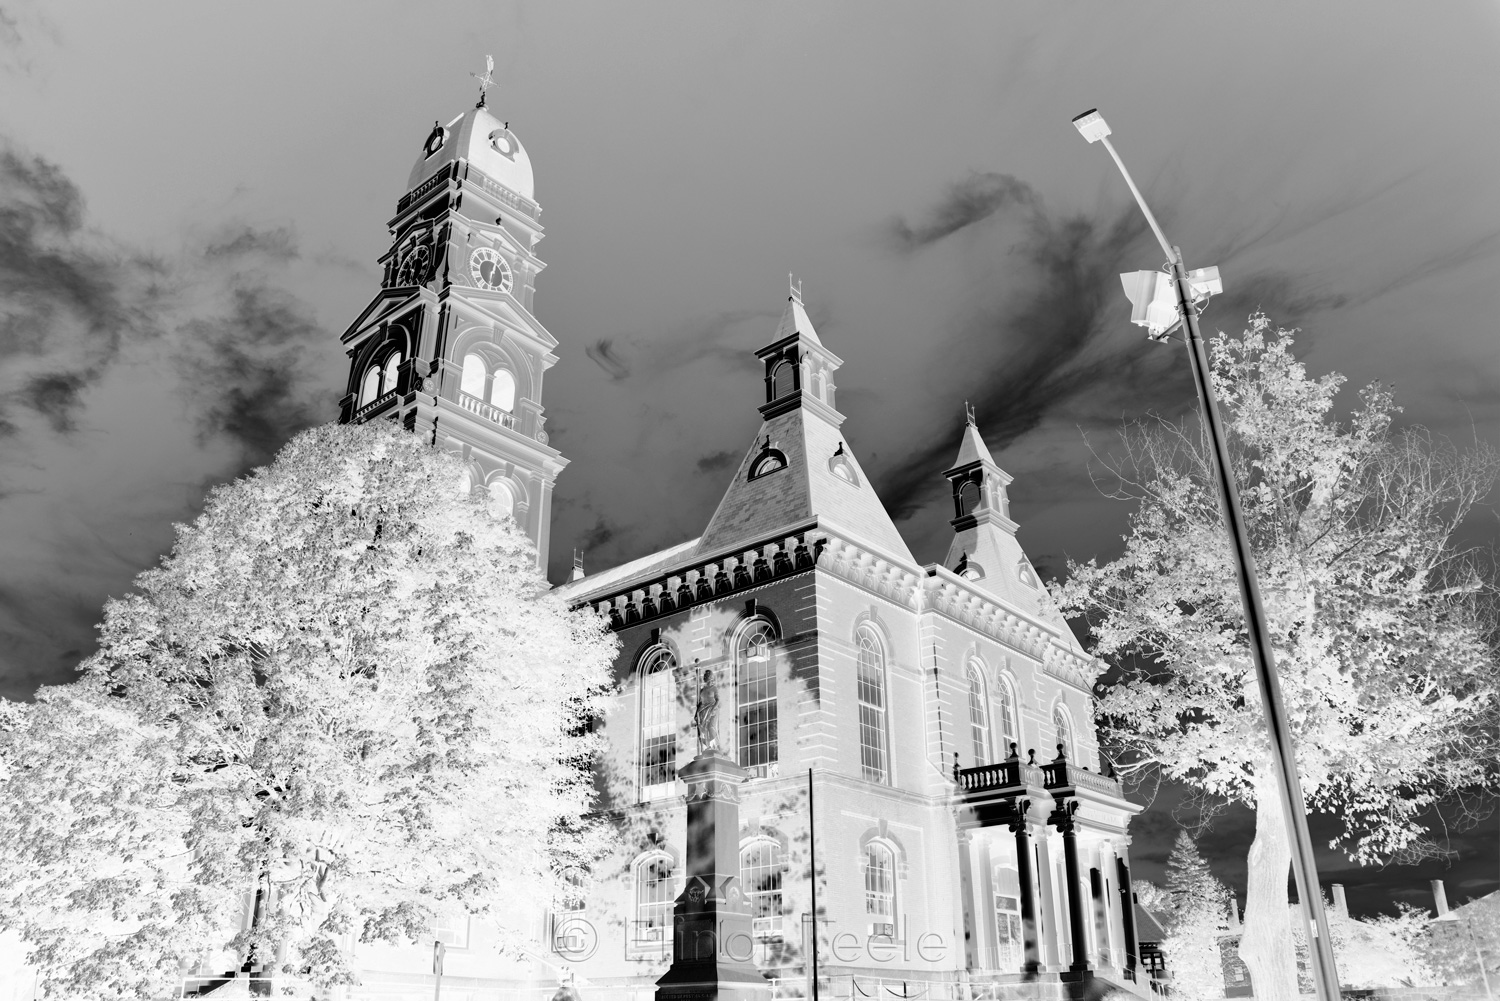 Gloucester City Hall - Black & White Abstract